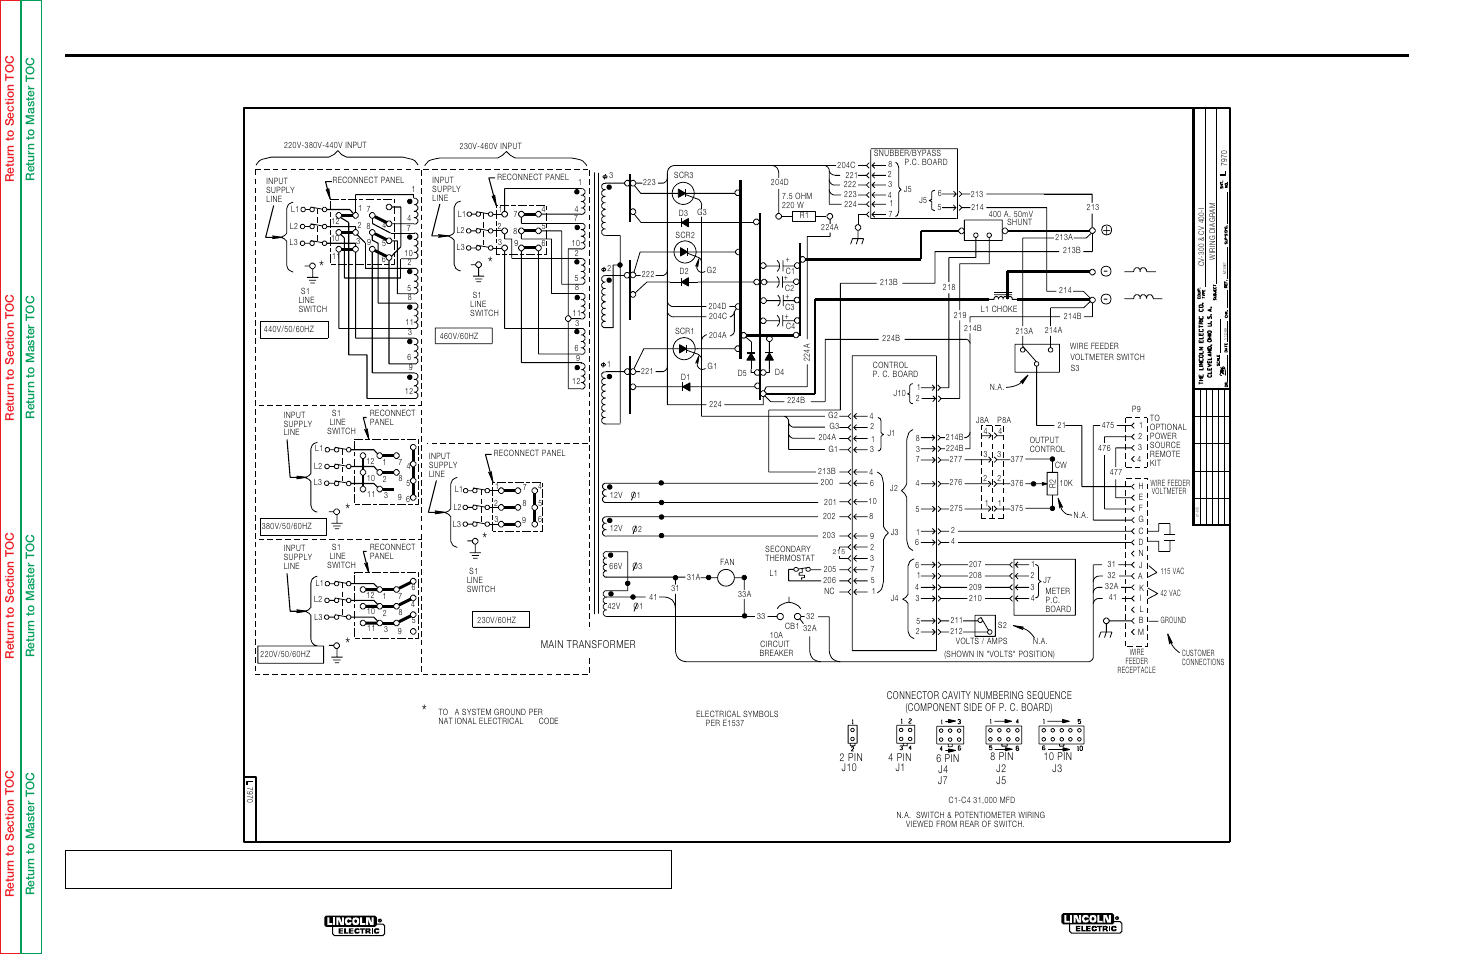 electrical diagrams wiring diagram for code 9456 lincoln electrical diagrams wiring diagram for code 9456 lincoln electric idealarc cv 300 user manual page 93 112